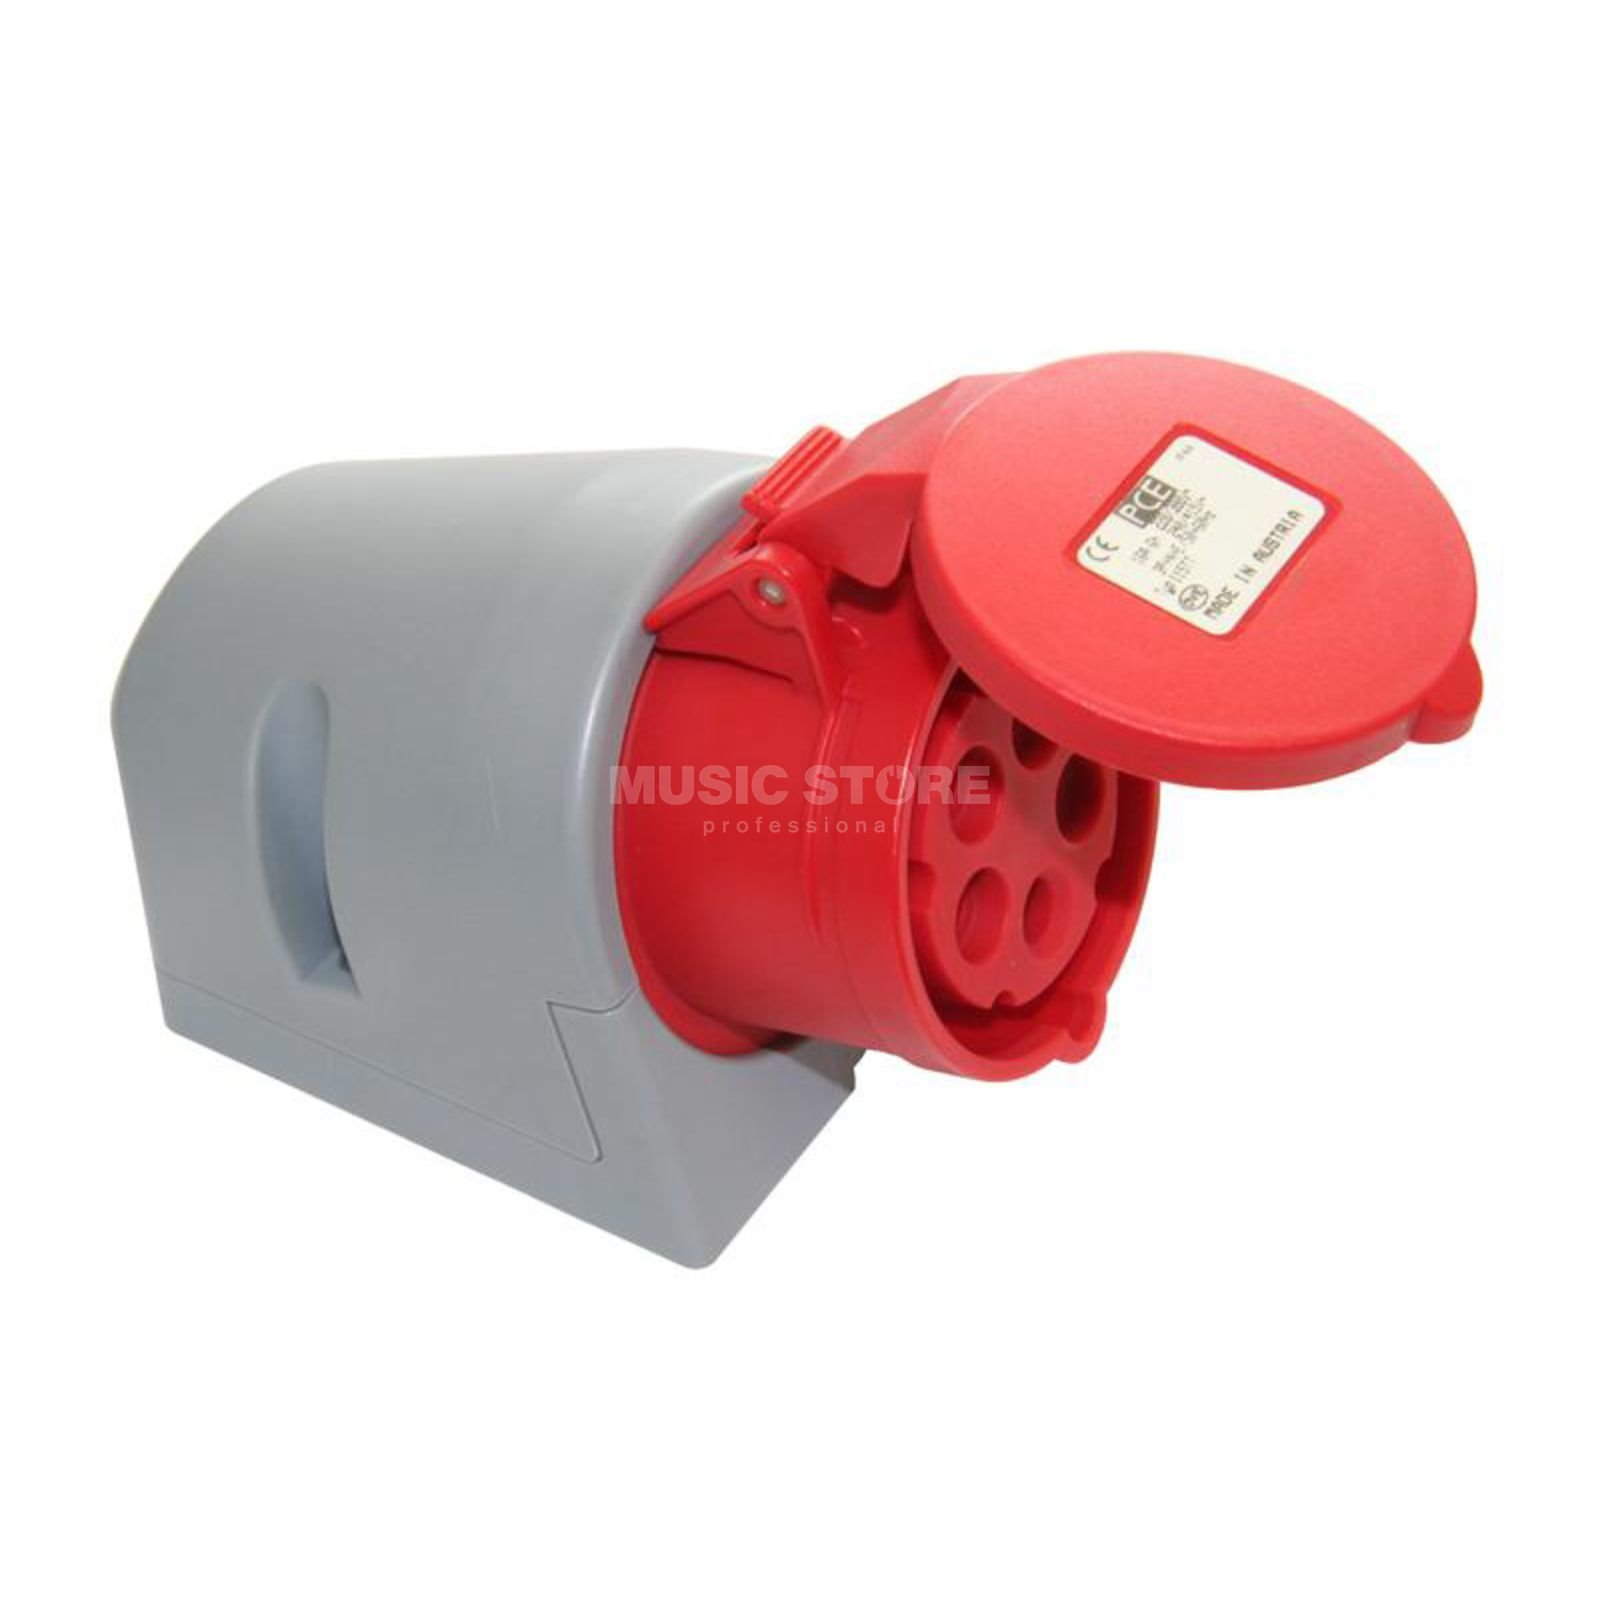 PCE Wall socket CEE 16A 5pin Turbo Twist, red Produktbillede